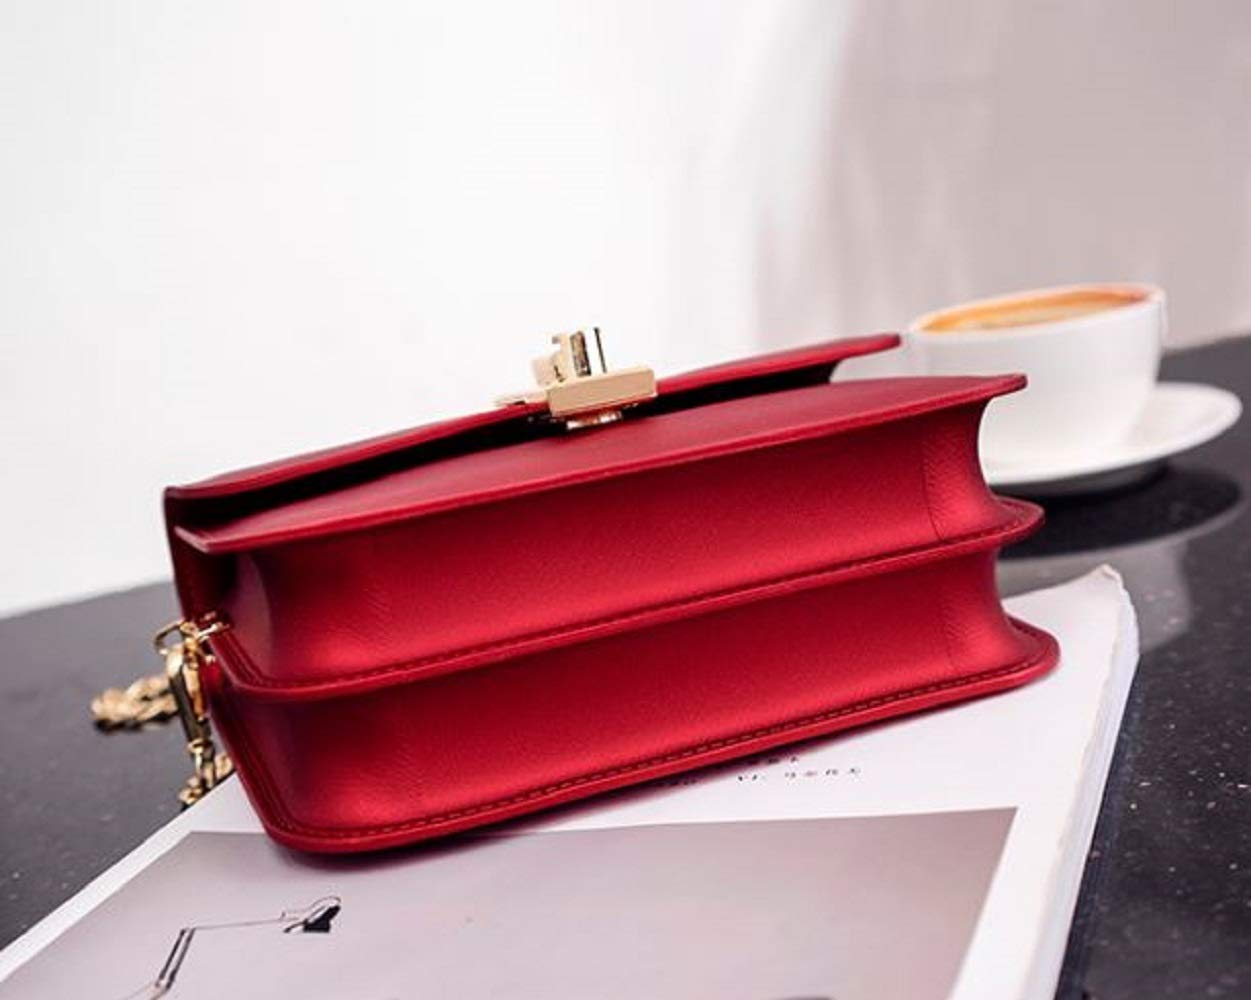 LF-JP PVC Evening bags for women [ Designer Clutch with Chain ] Shoulder Bag Cross body Purse (Red) by LF-JP (Image #8)